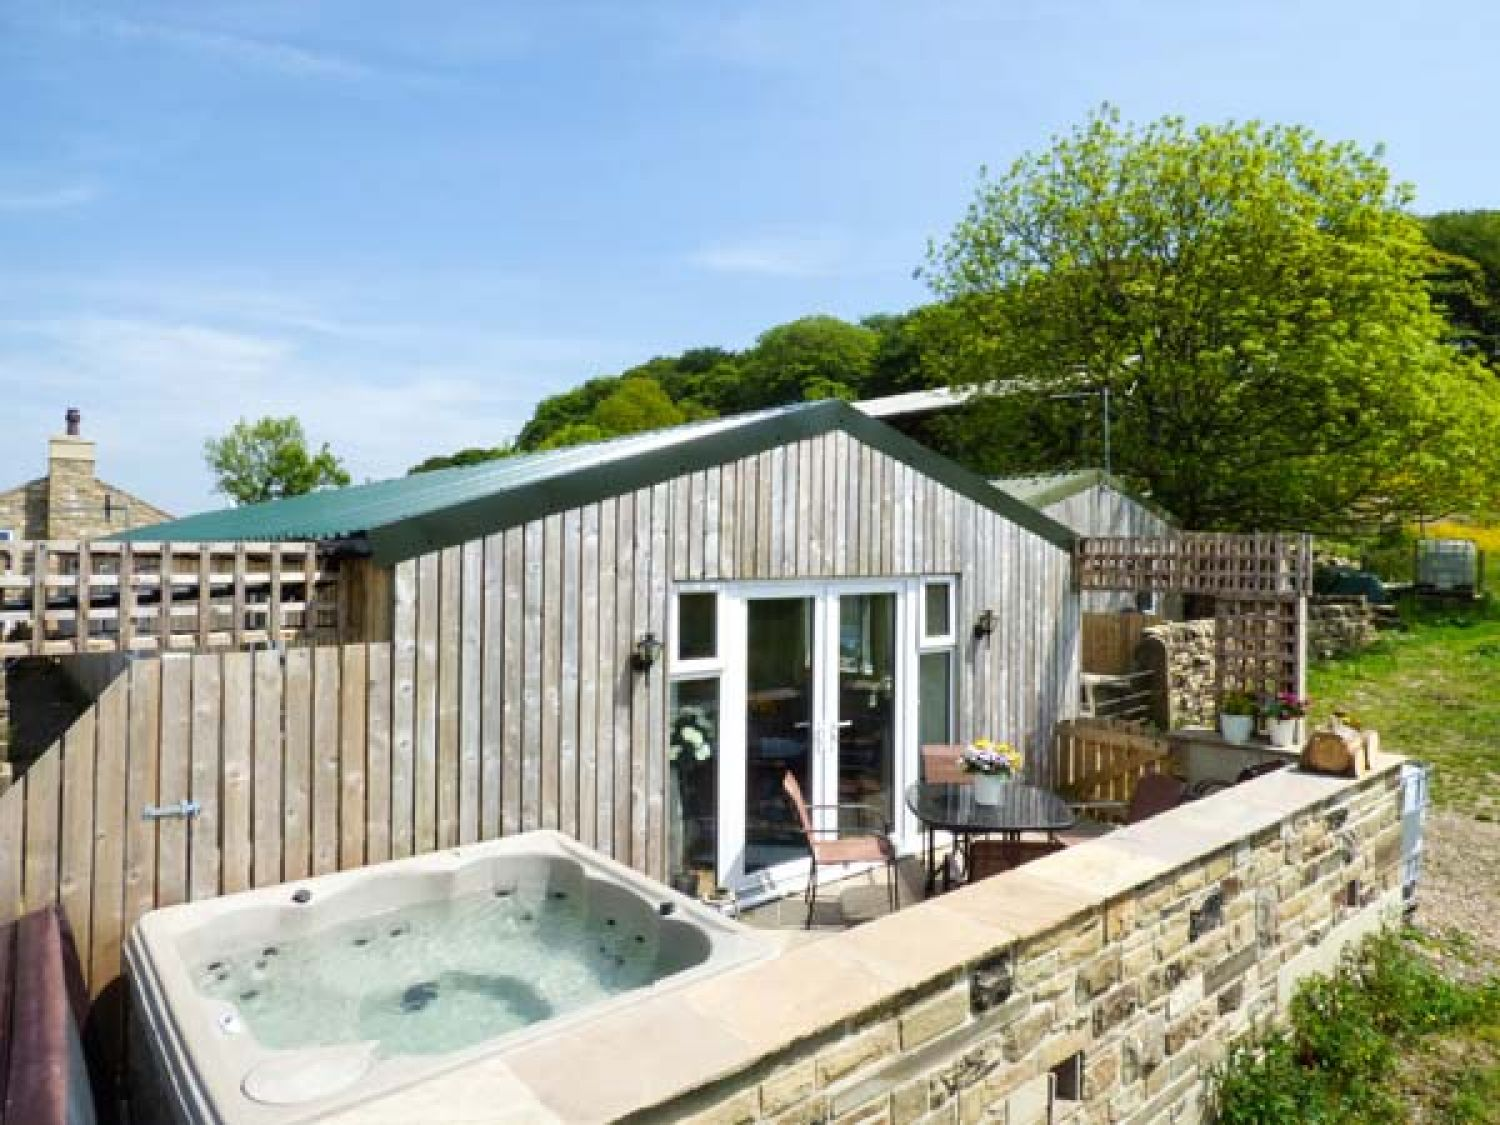 20 Lodges with Hot Tubs within a 90 minute drive of York  - The old piggery